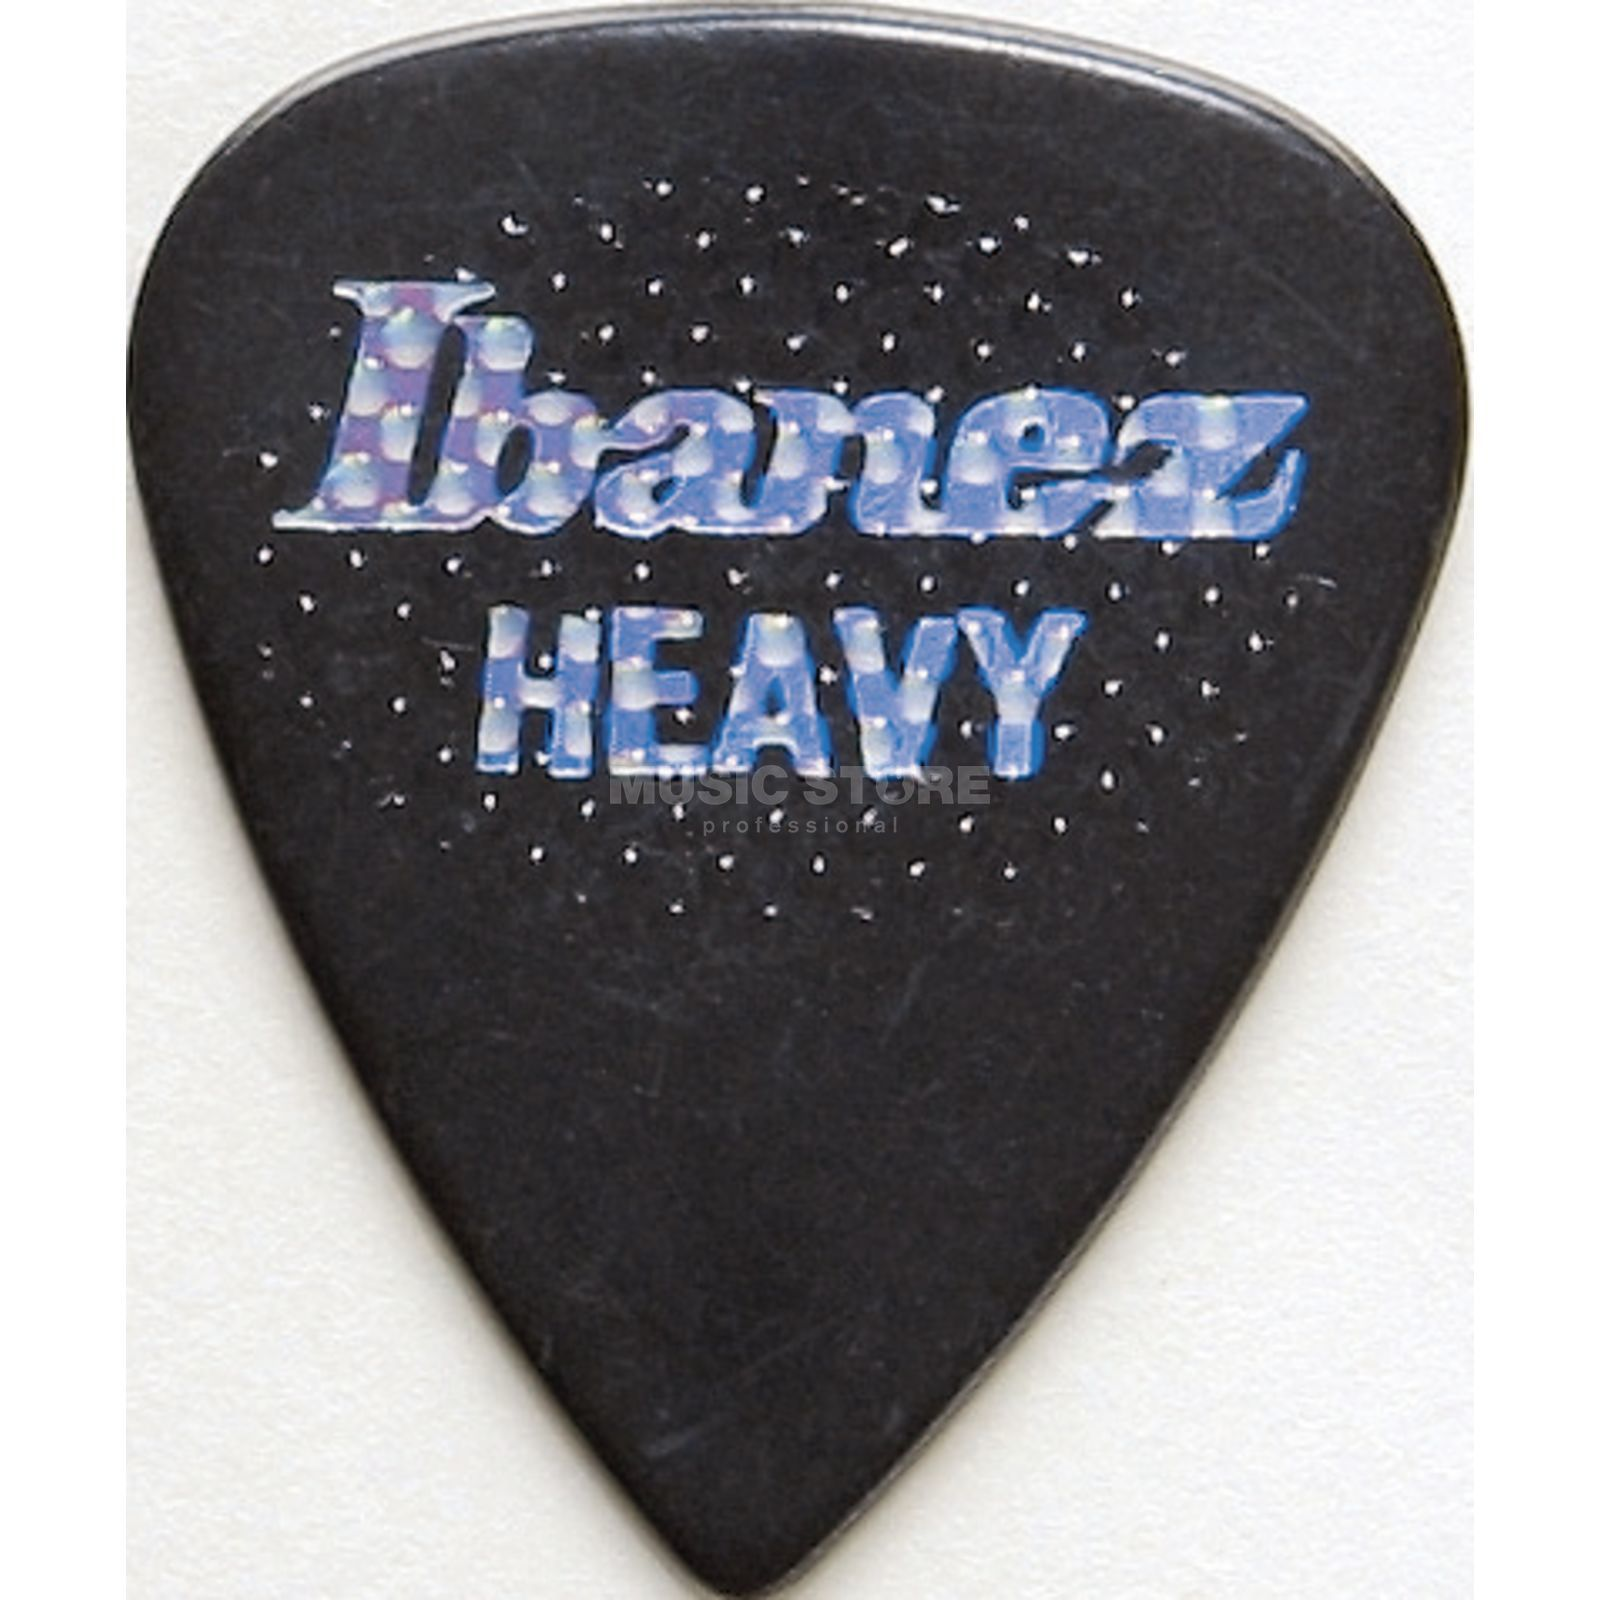 Ibanez Guitar Pick BPS17HR-BK, 6-pack heavy rubber,Grip Wizard,black Produktbillede